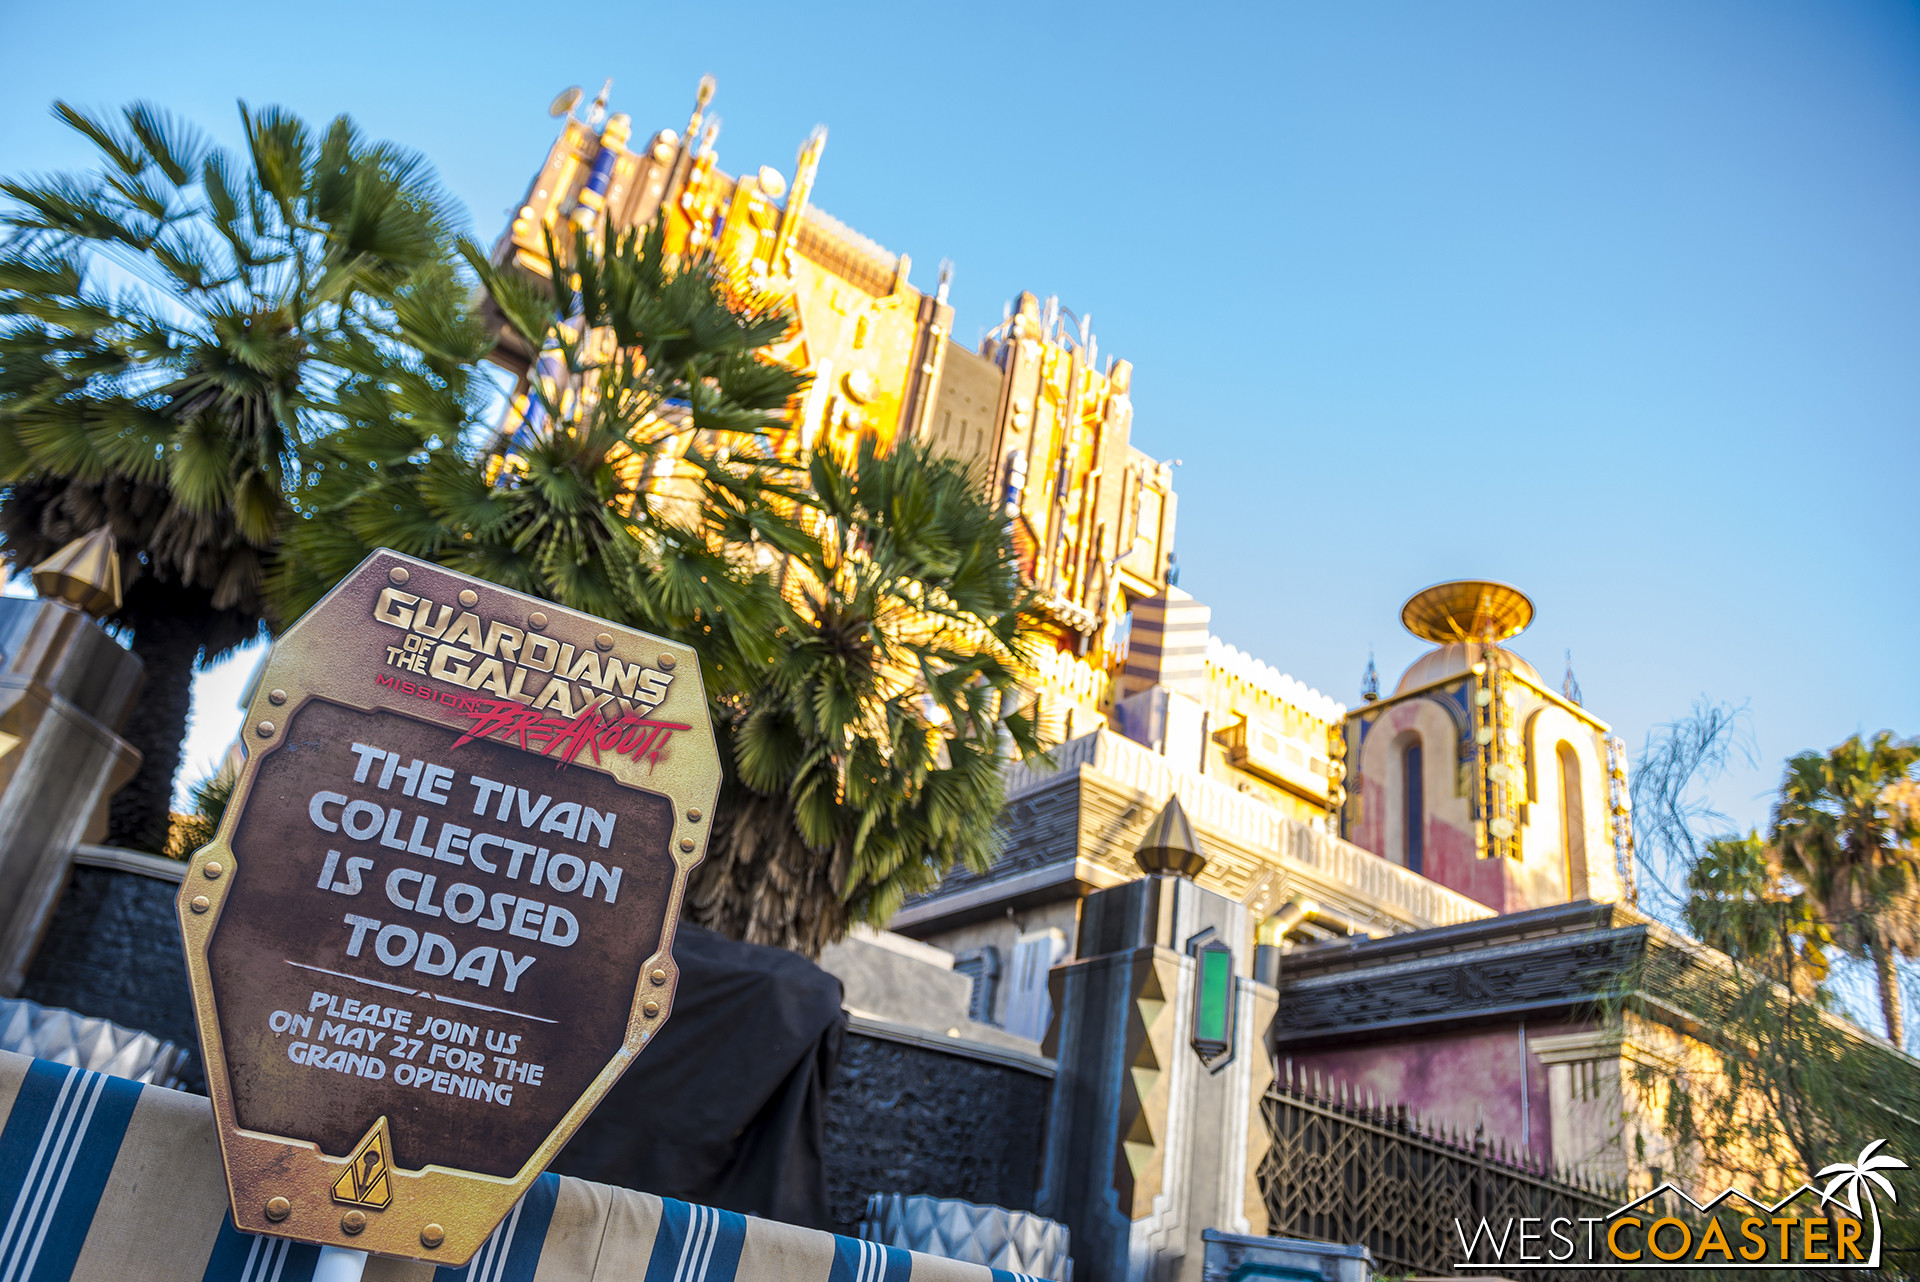 There will be six unique experiences for guests who ride, each tied to its own soundtrack from the franchise's fantastic music collection.